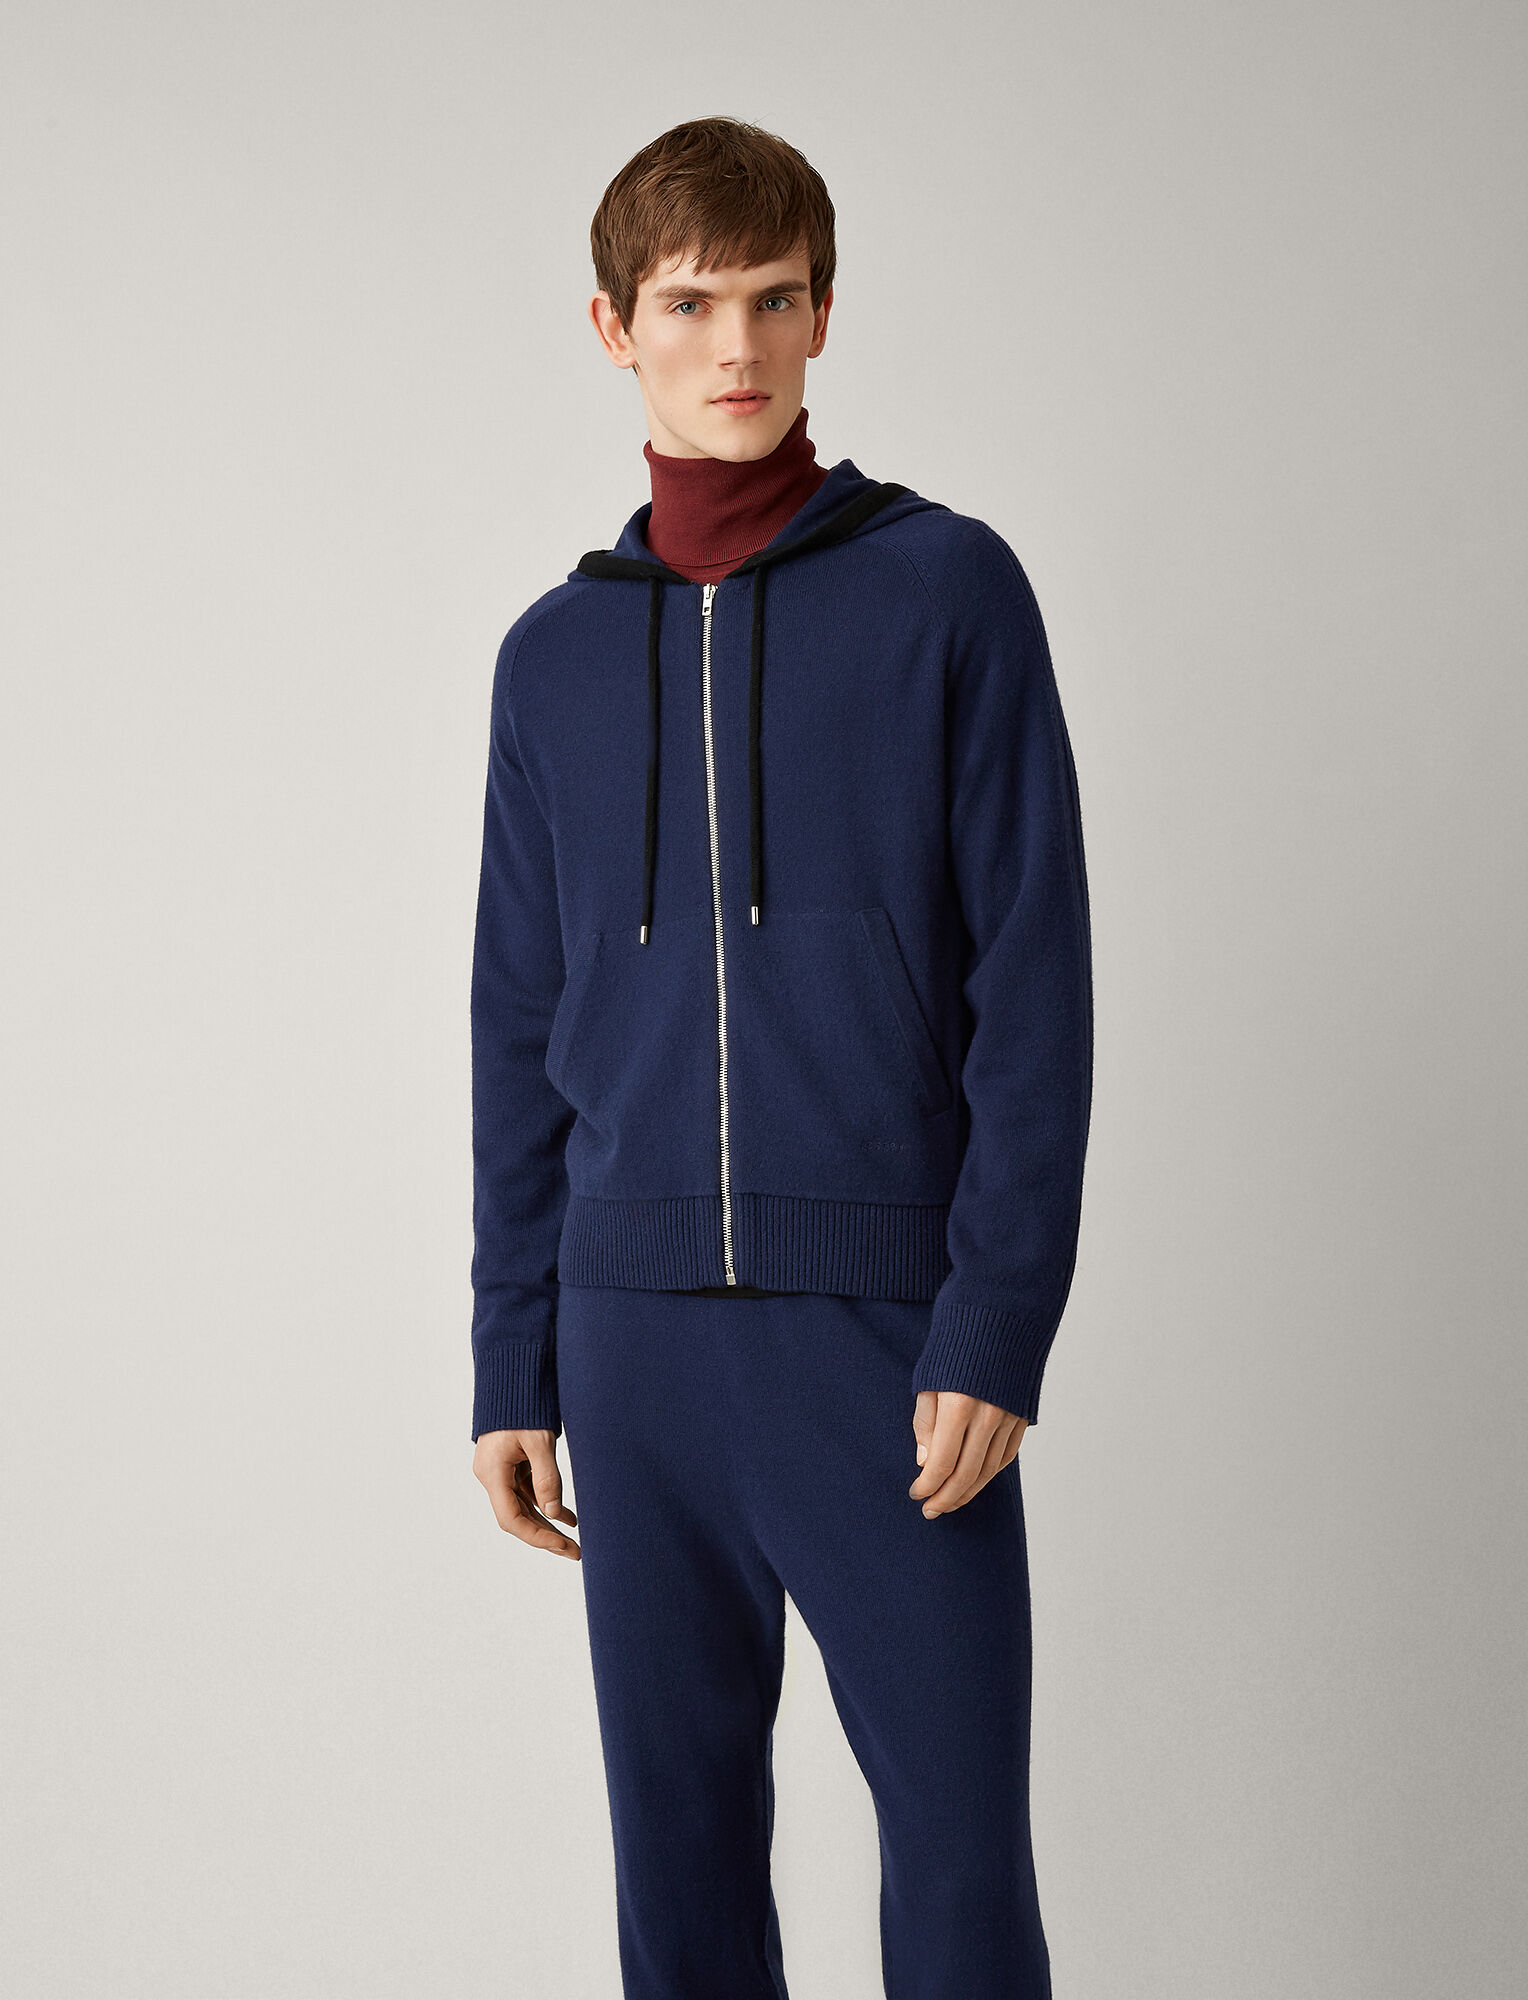 Joseph, Mongolian Cashmere Knit Hoody, in ROYAL BLUE